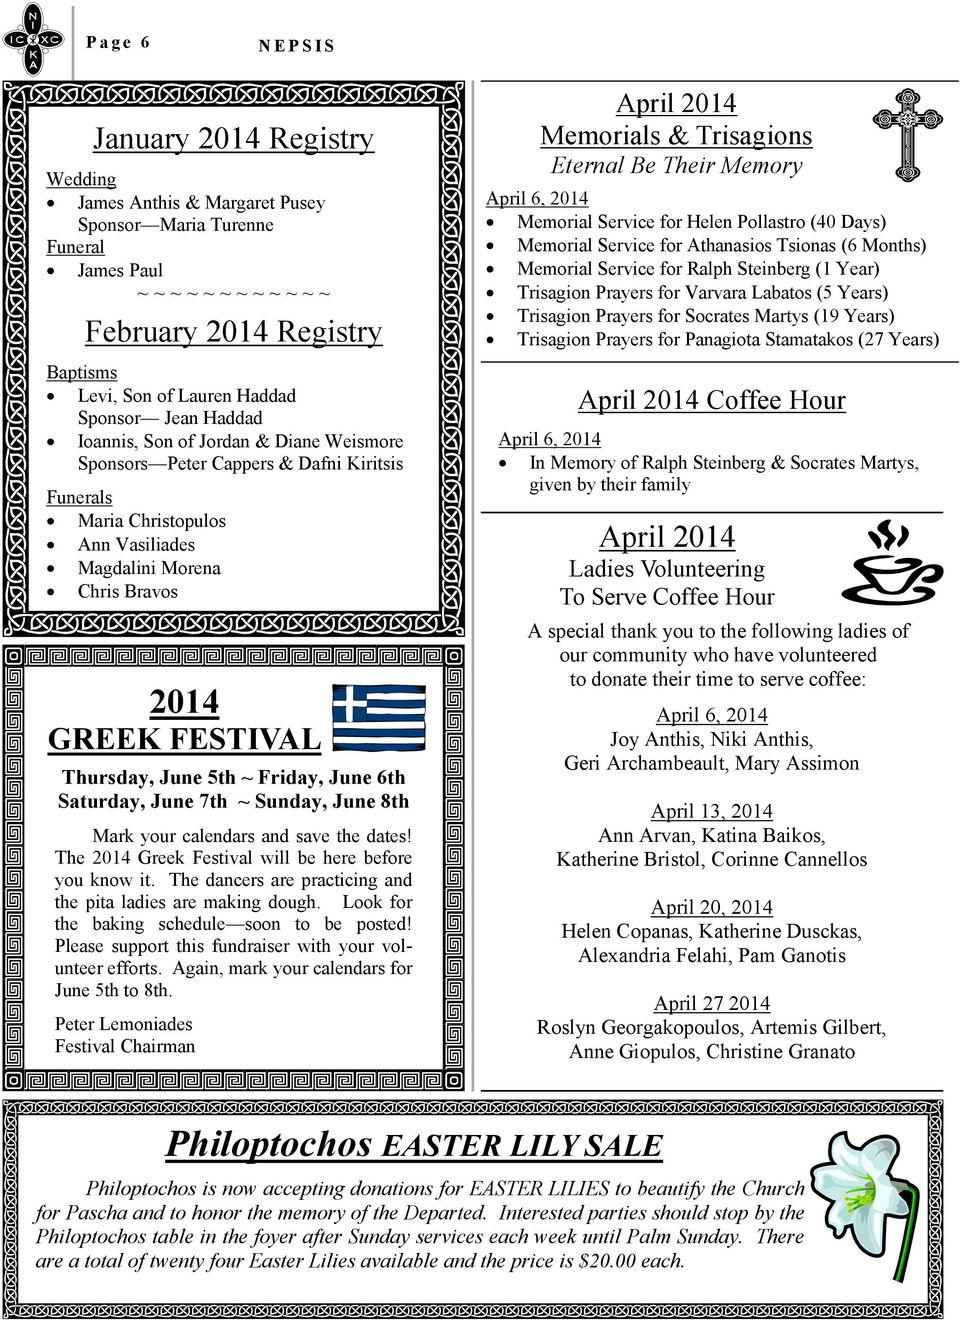 Thursday, June 5th ~ Friday, June 6th Saturday, June 7th ~ Sunday, June 8th Mark your calendars and save the dates! The 2014 Greek Festival will be here before you know it.